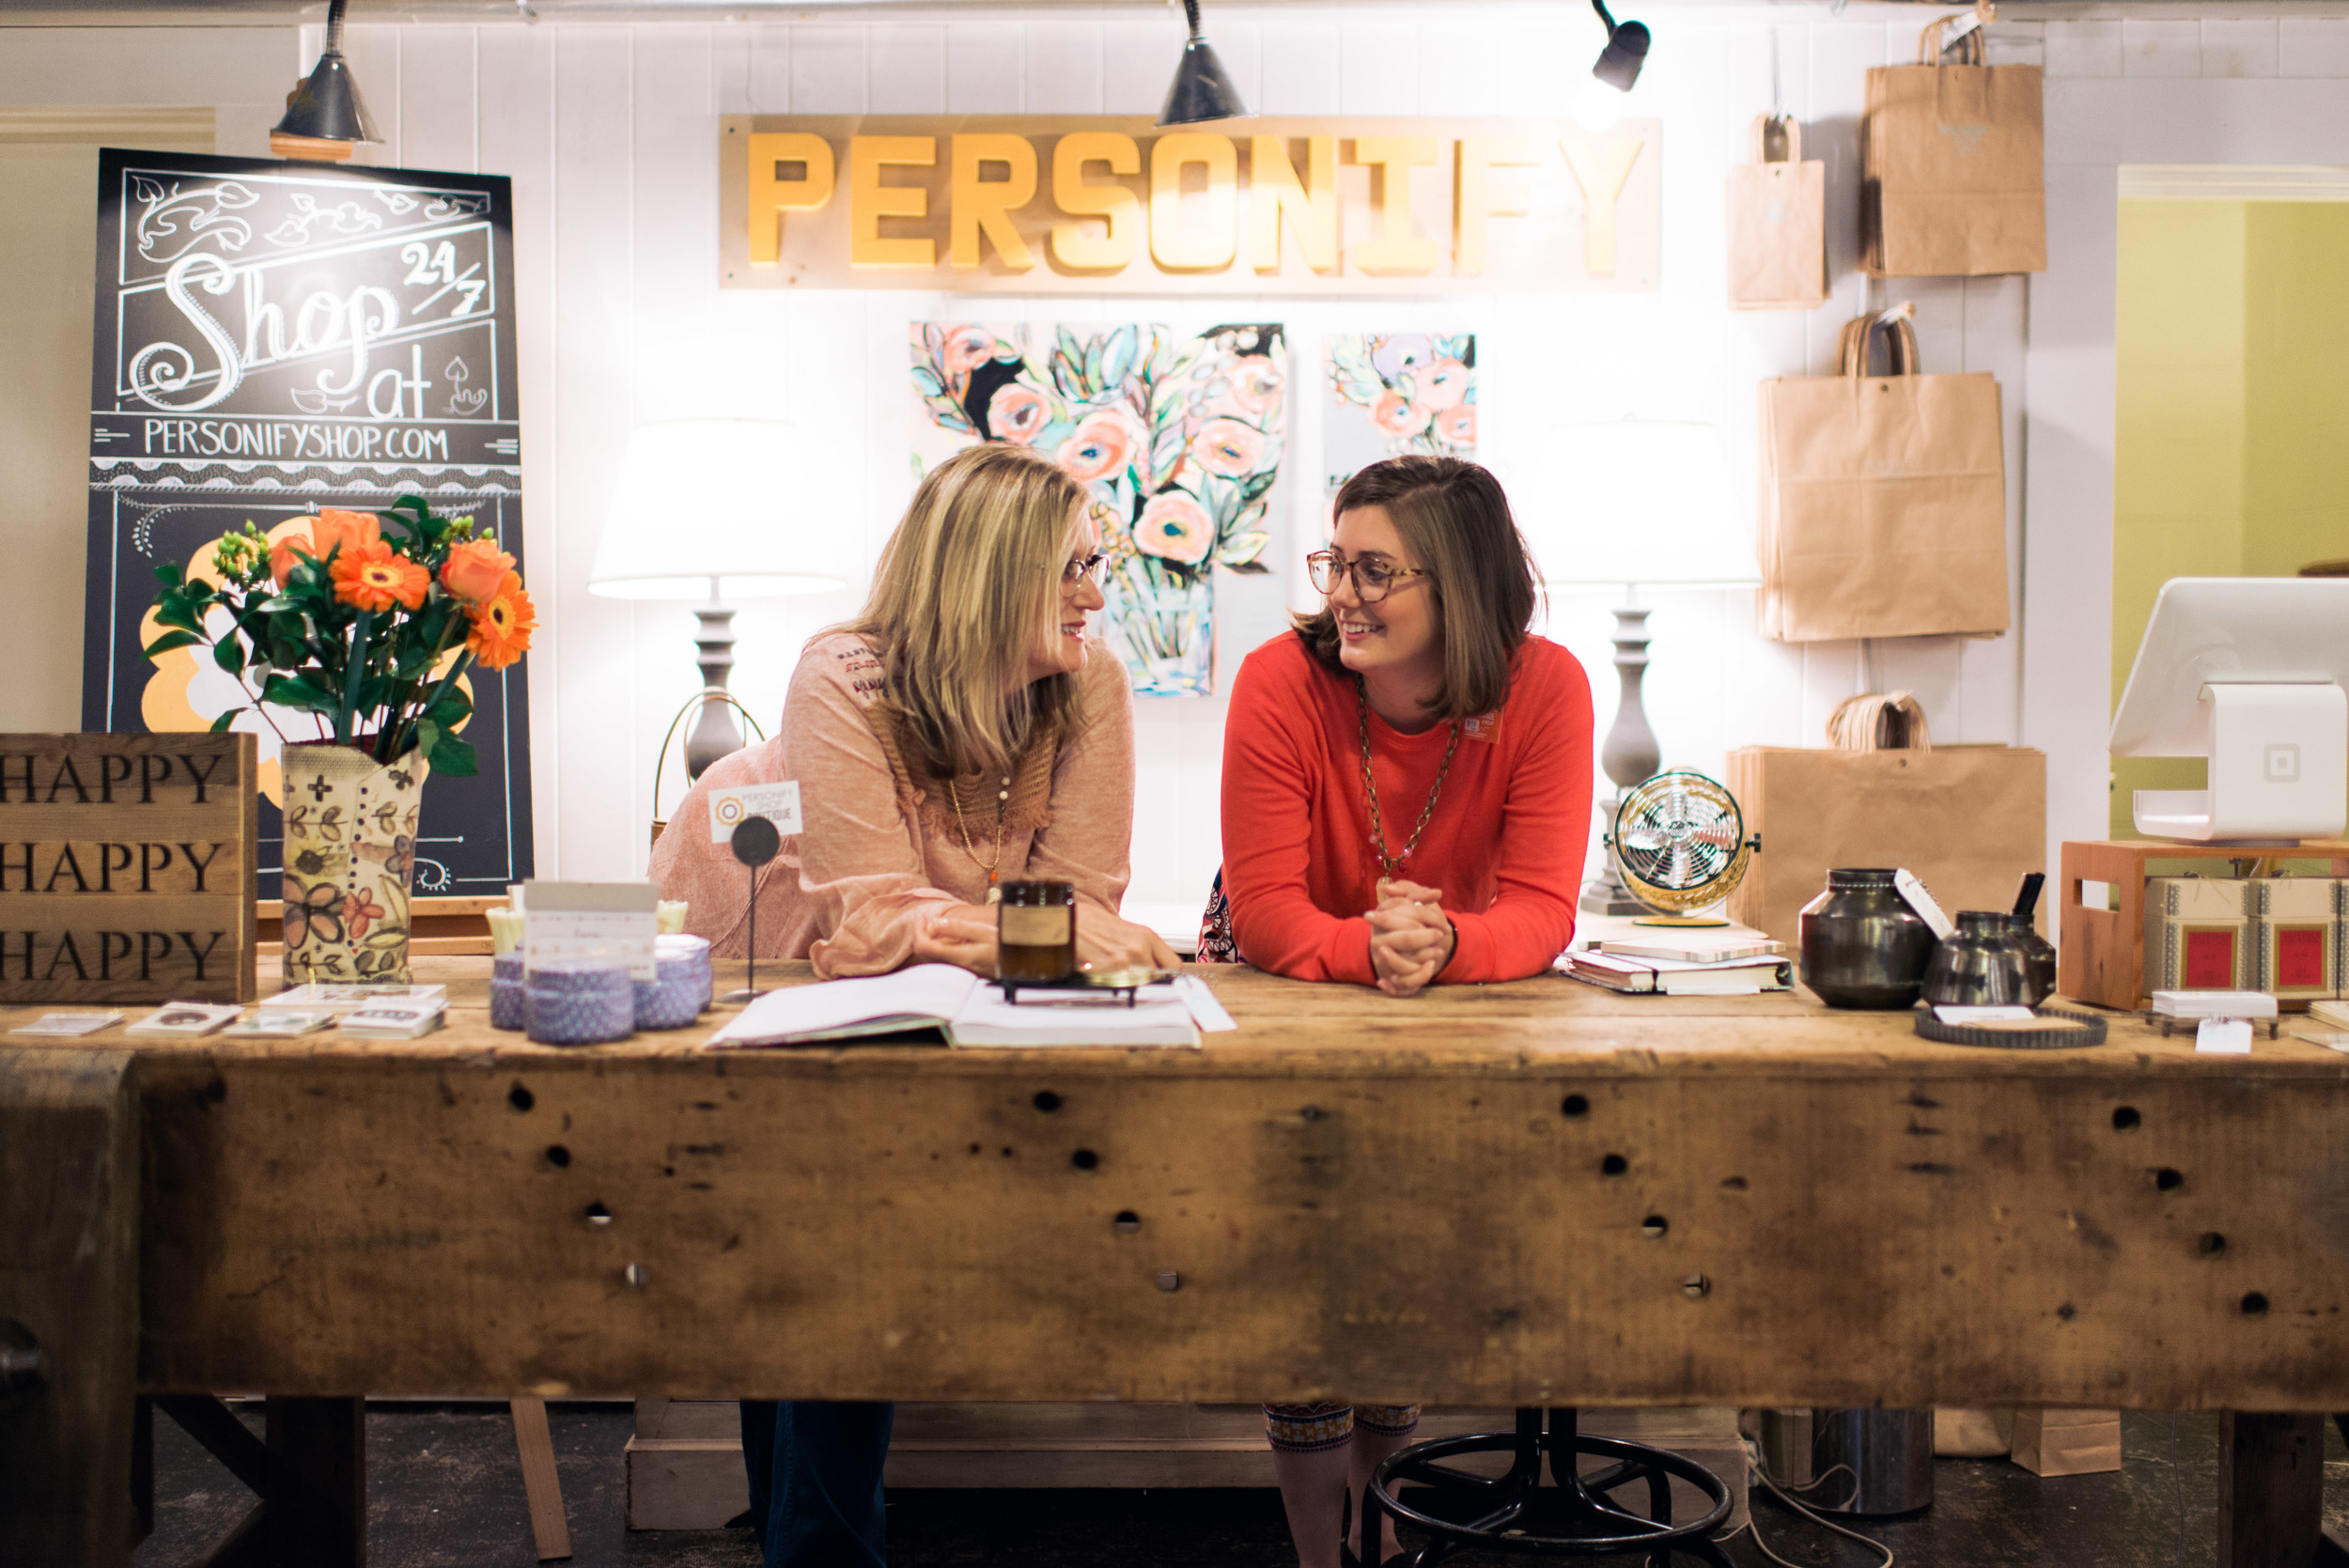 Meet Maddie Morden + Tammy Lopez- The mother-daughter team behind Personify Shop